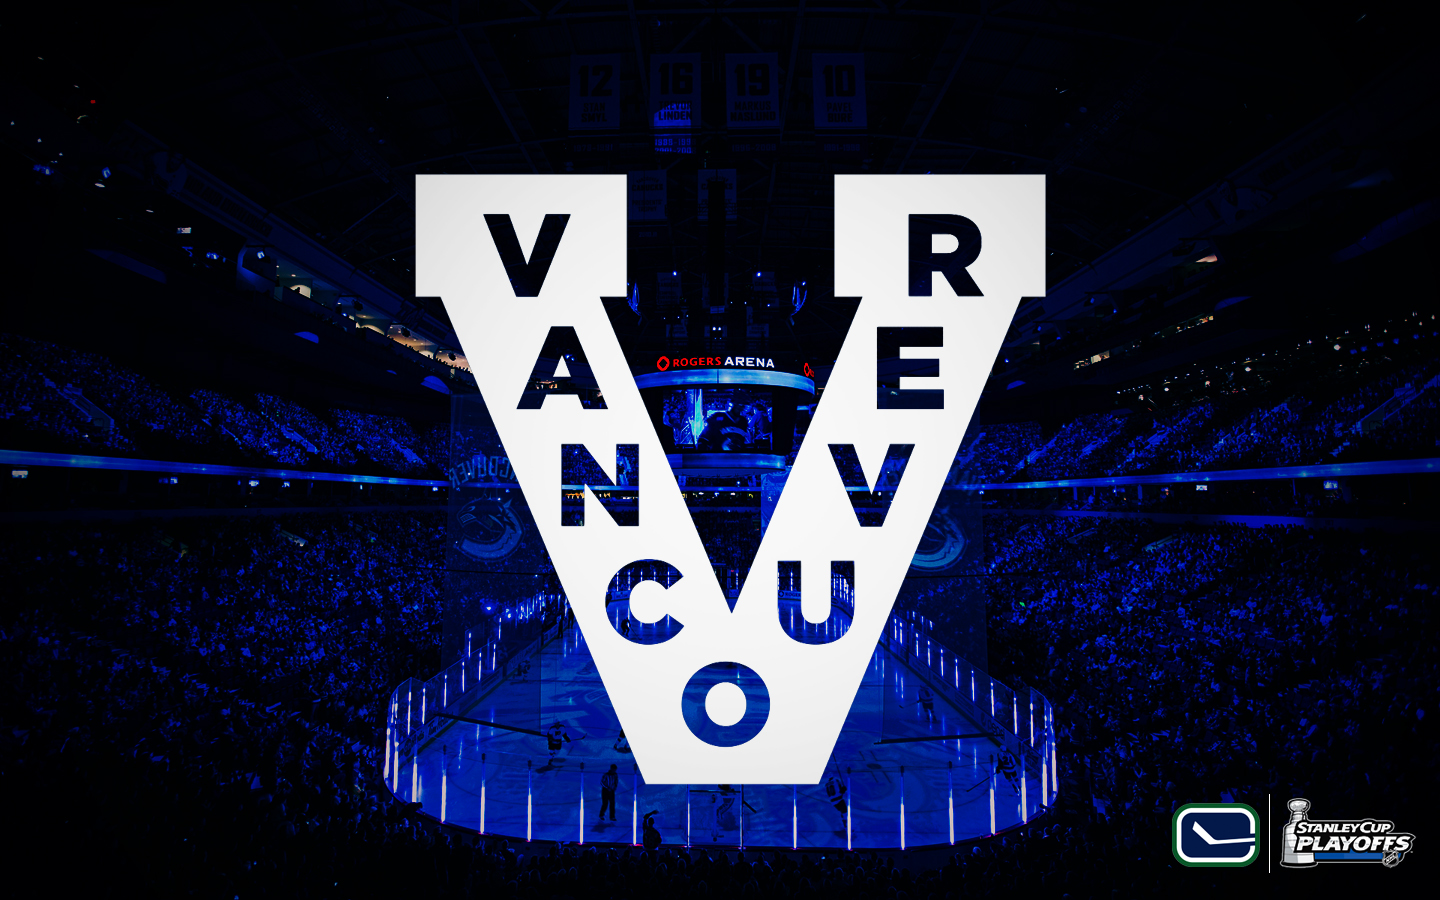 Best of Vancouver Canucks Wallpaper Full HD Pictures 1440x900